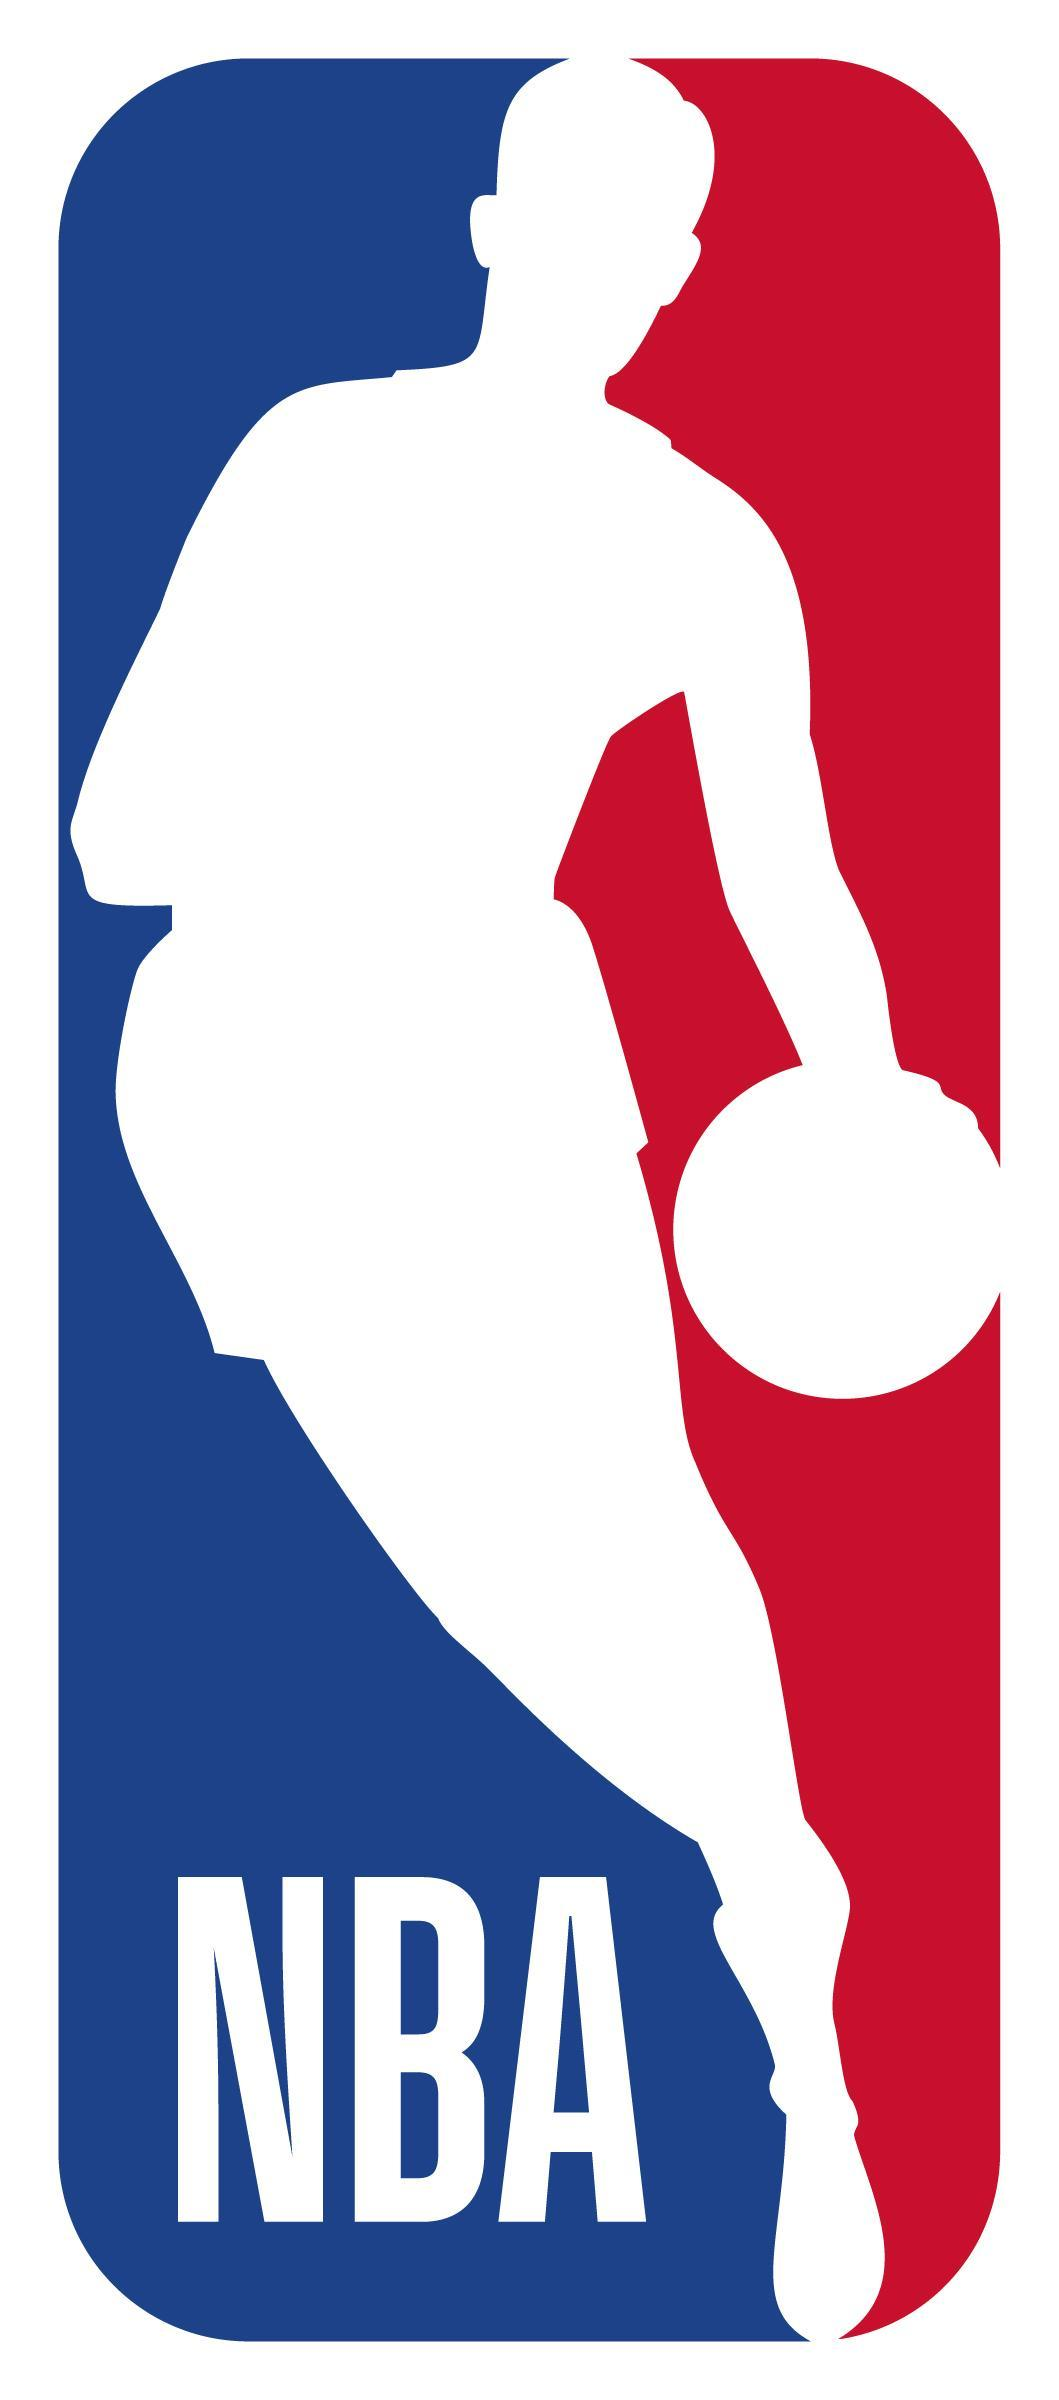 A first look at the NBA\'s refreshed logo.